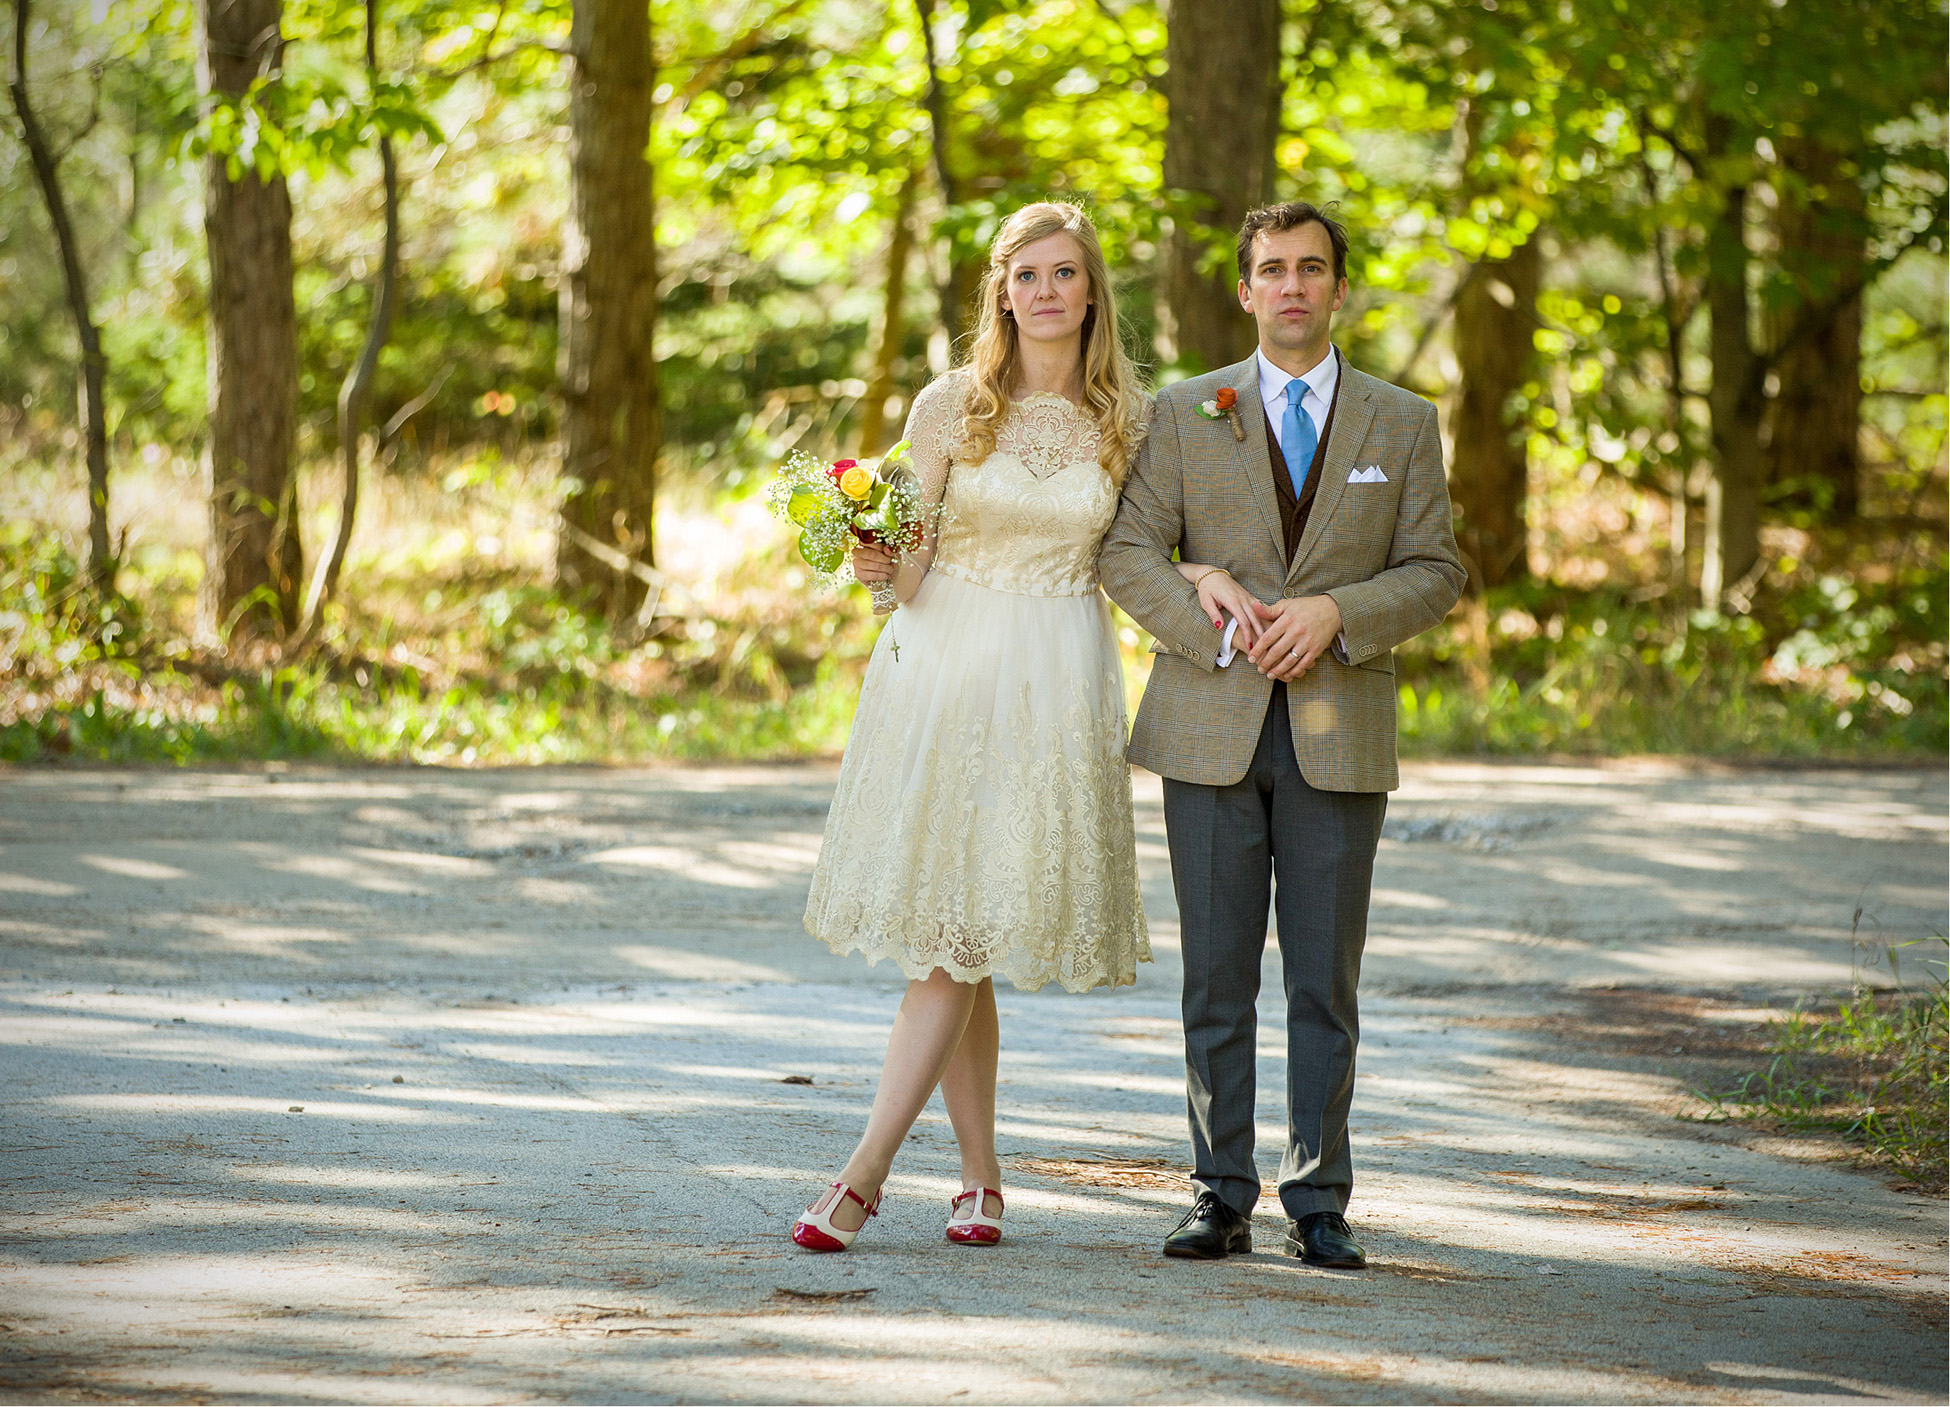 Jeanette & Michael's Wedding by Photographer Thomas Kachadurian